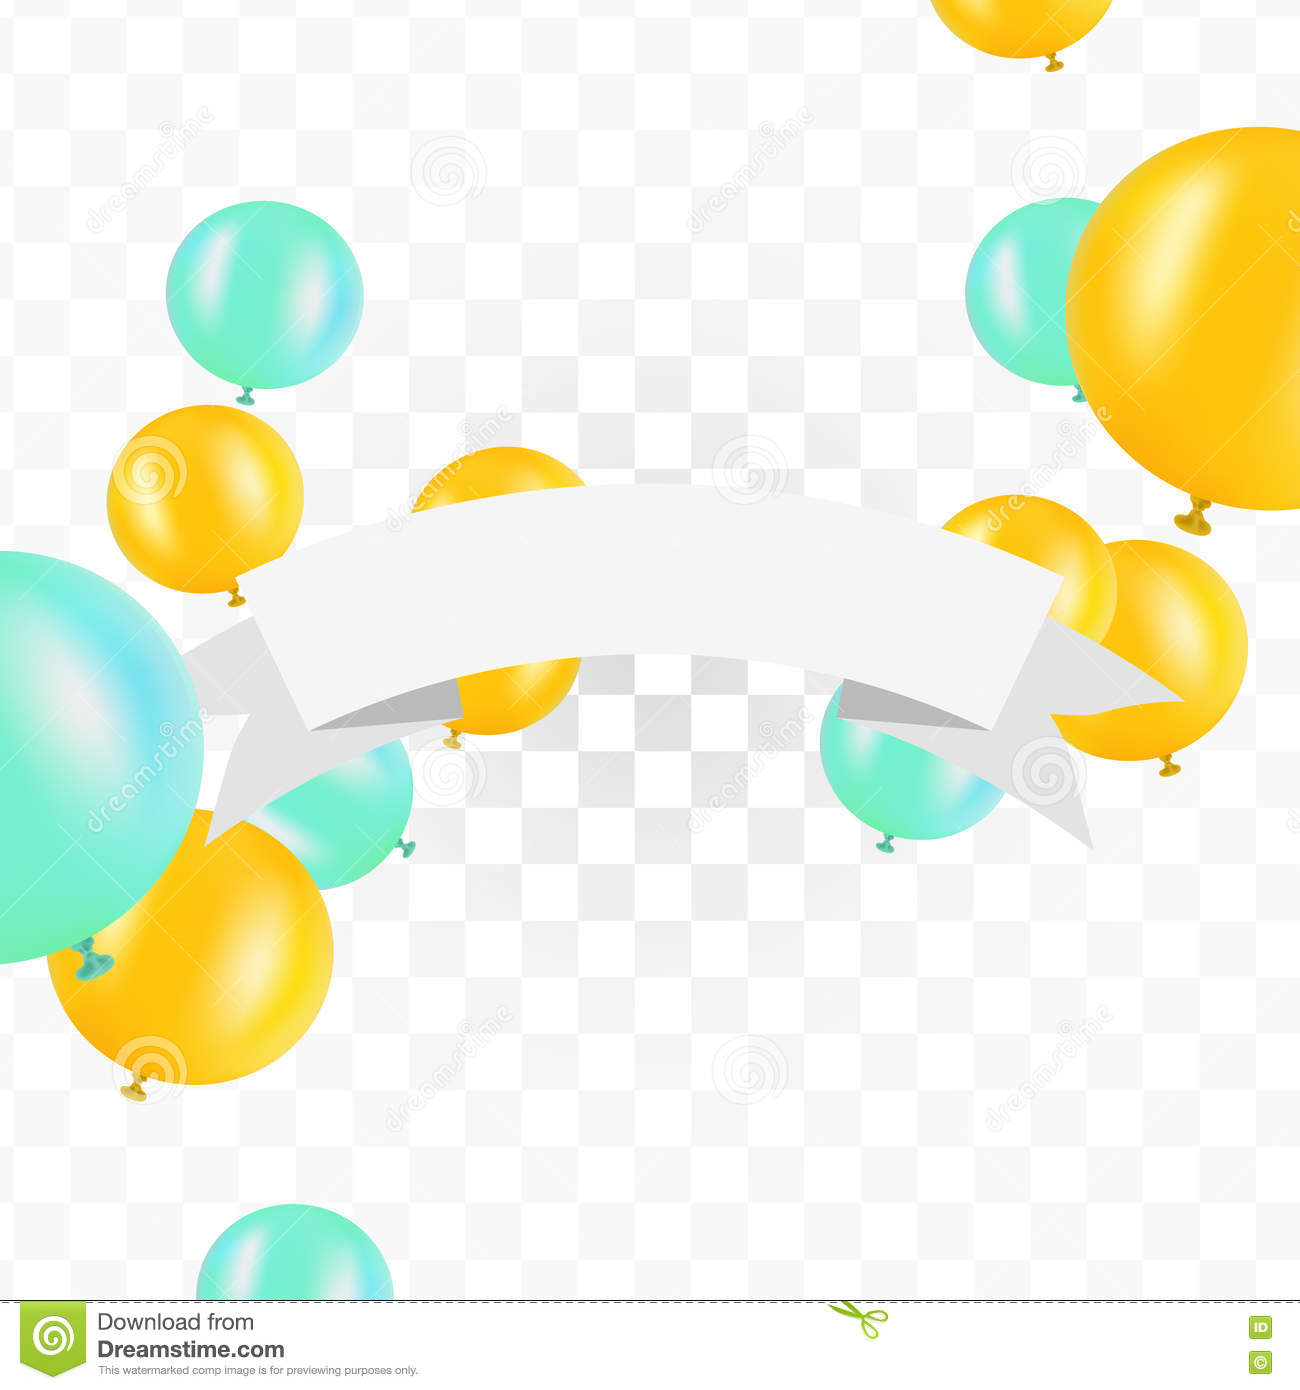 Ribbon transparent background clipart clipart transparent download White Ribbon With Balloons On Transparent Background. Vector ... clipart transparent download